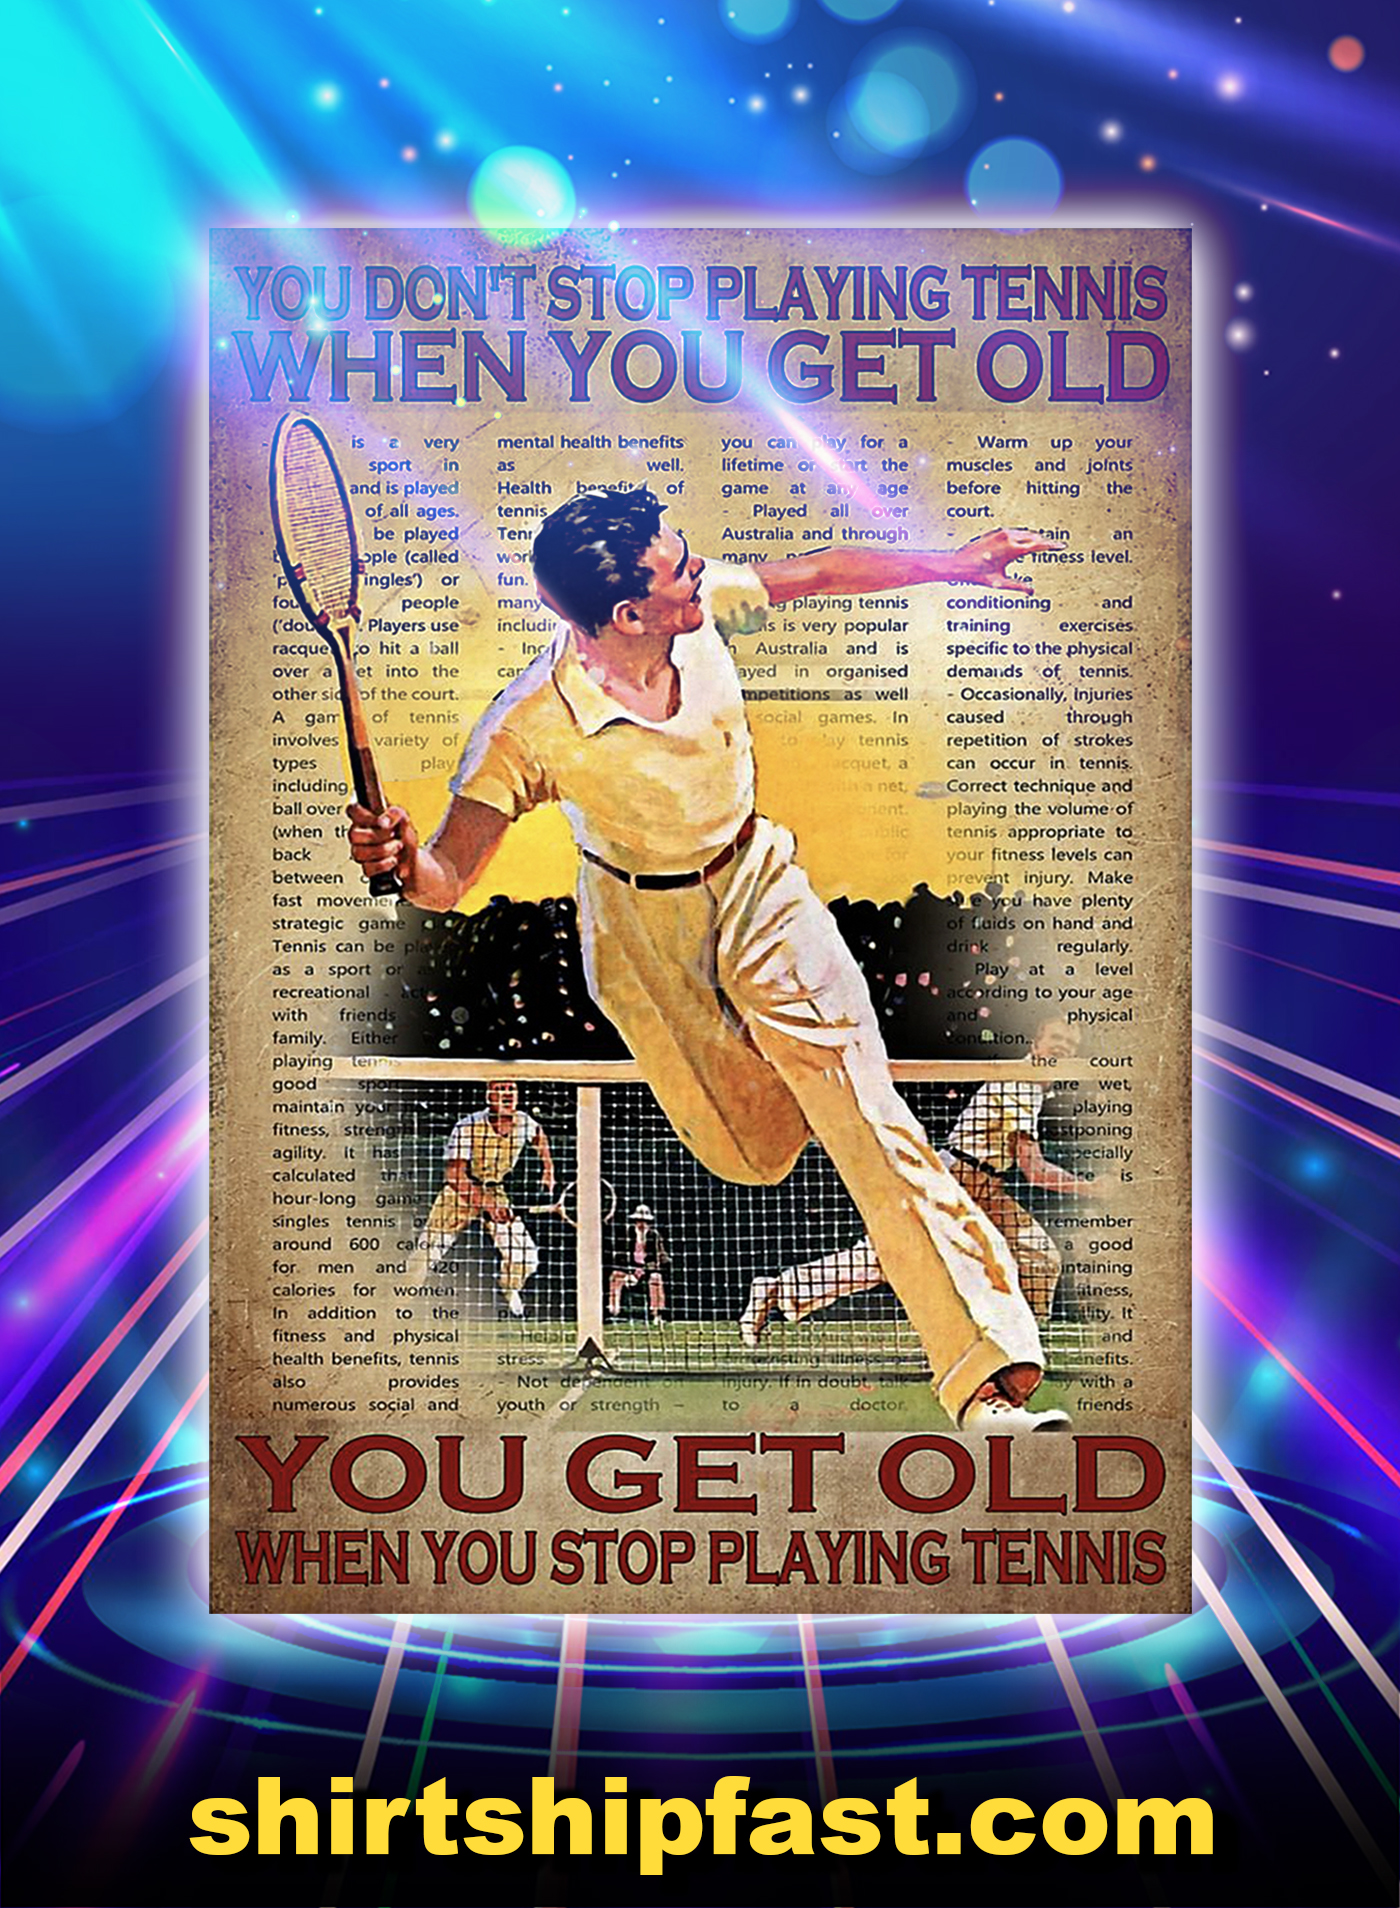 You don't play tennis when you get old poster - A1